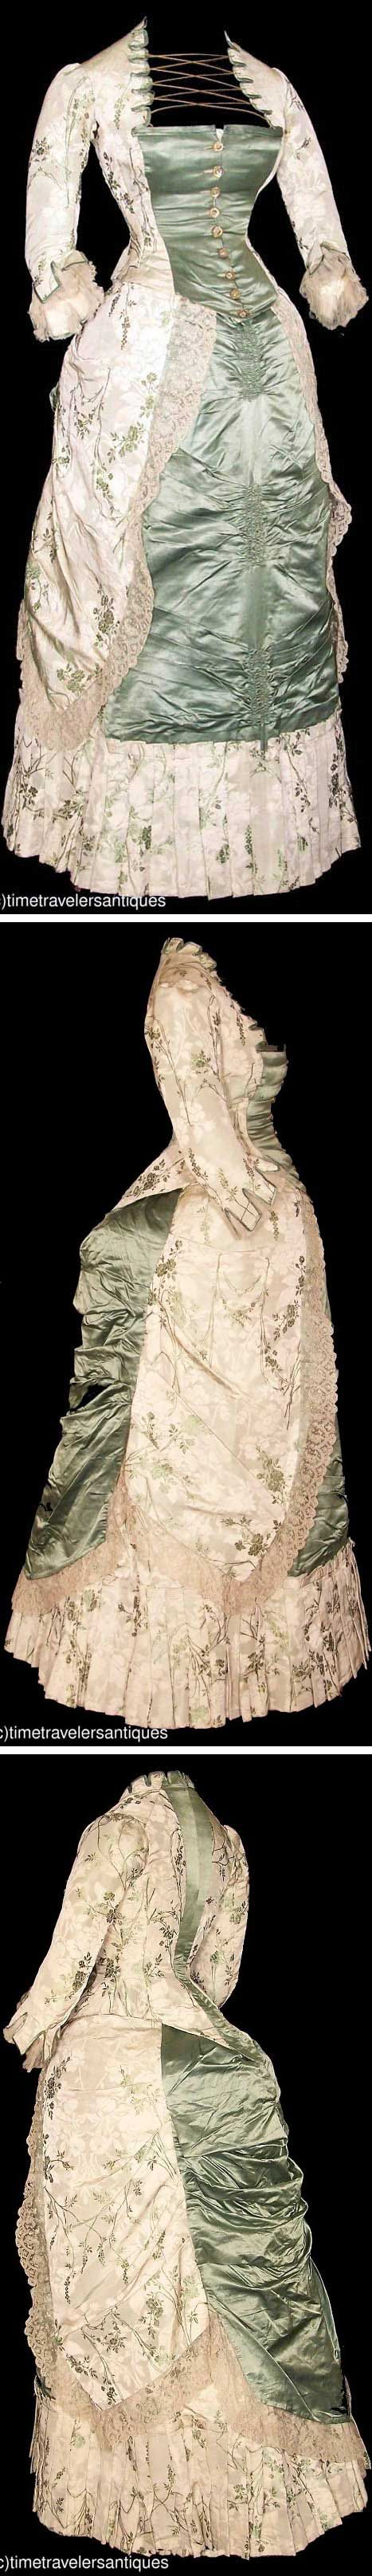 Dress, ca. 1880. Sage green floral silk brocade two-piece bustle gown with fern green accents & moss green silk satin panels. Silk cord laced design criss-crosses decolletage with tab accents that repeat at cuffs, which have pleated silk chiffon inserts. Lined bodice has deep points at hem & decorative floral metal buttons at front closure. Ruched & pleated front panel on skirt; draped bustled back to attached overskirt, trimmed in blonde Chantilly lace. time-travelers/ebay